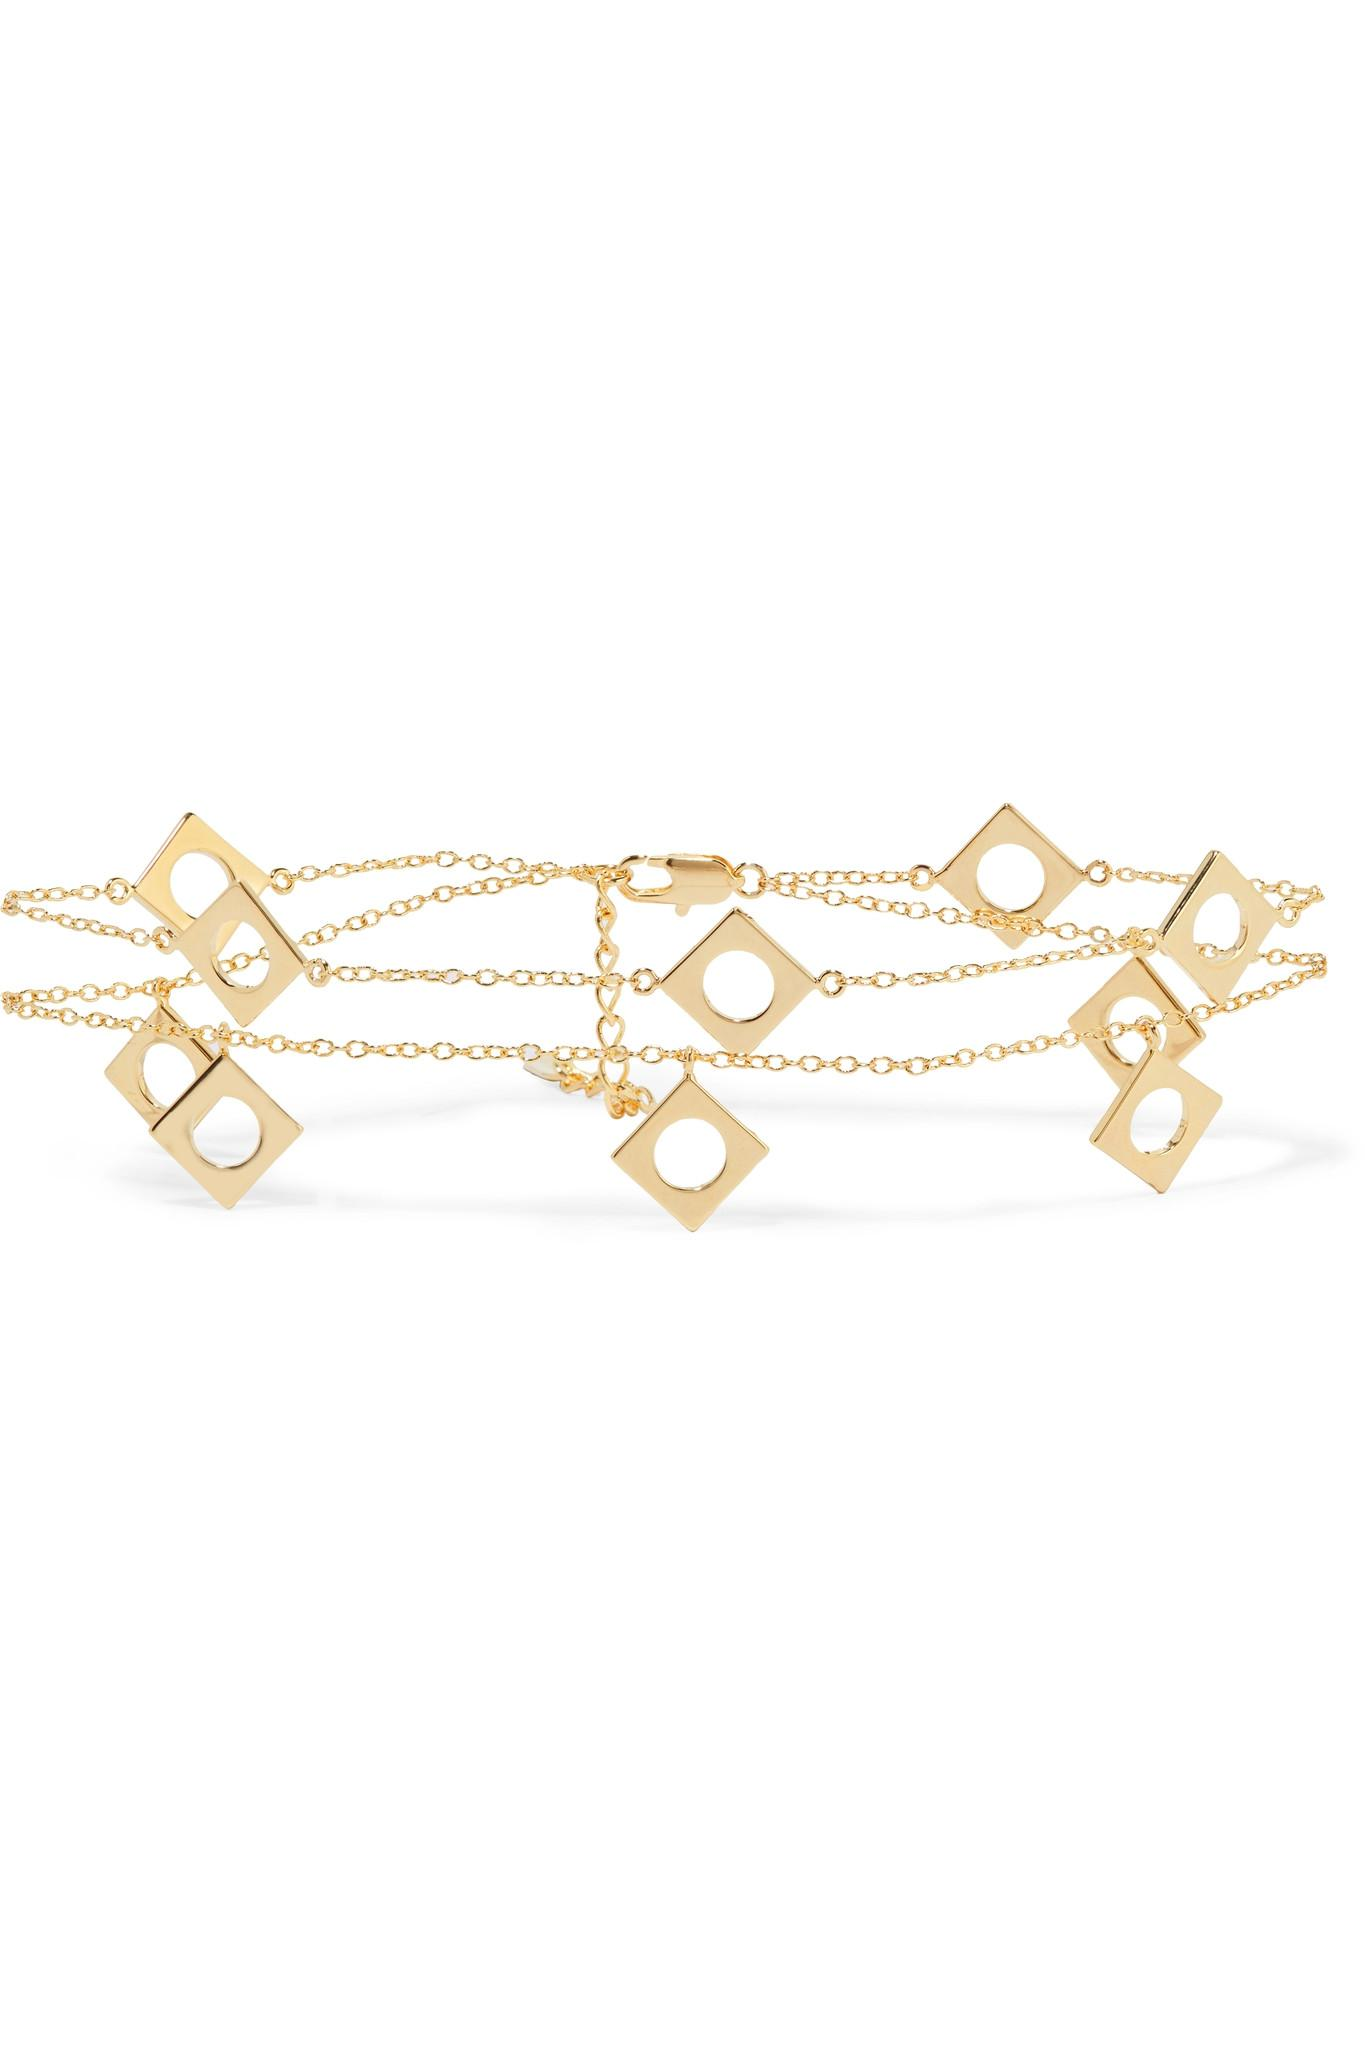 mariner elle anklets karat chain ankle link yellow archives gold by bracelet product anklet category jewels